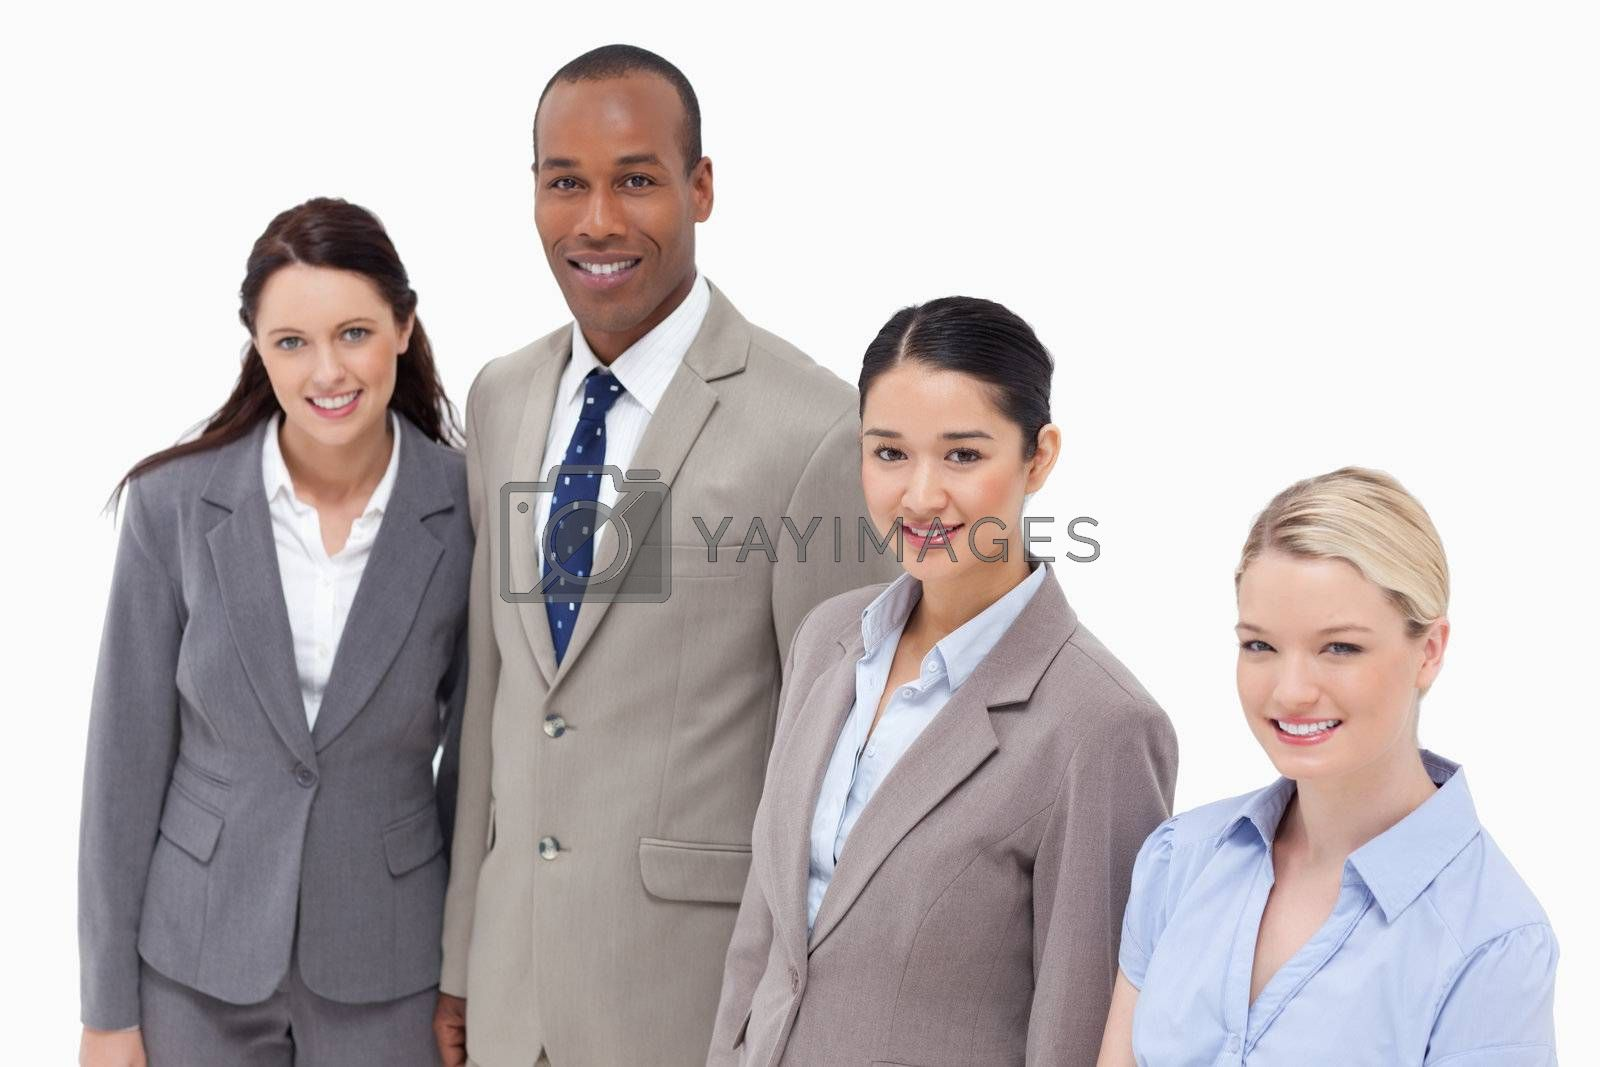 High angle shot of business people smiling against white background